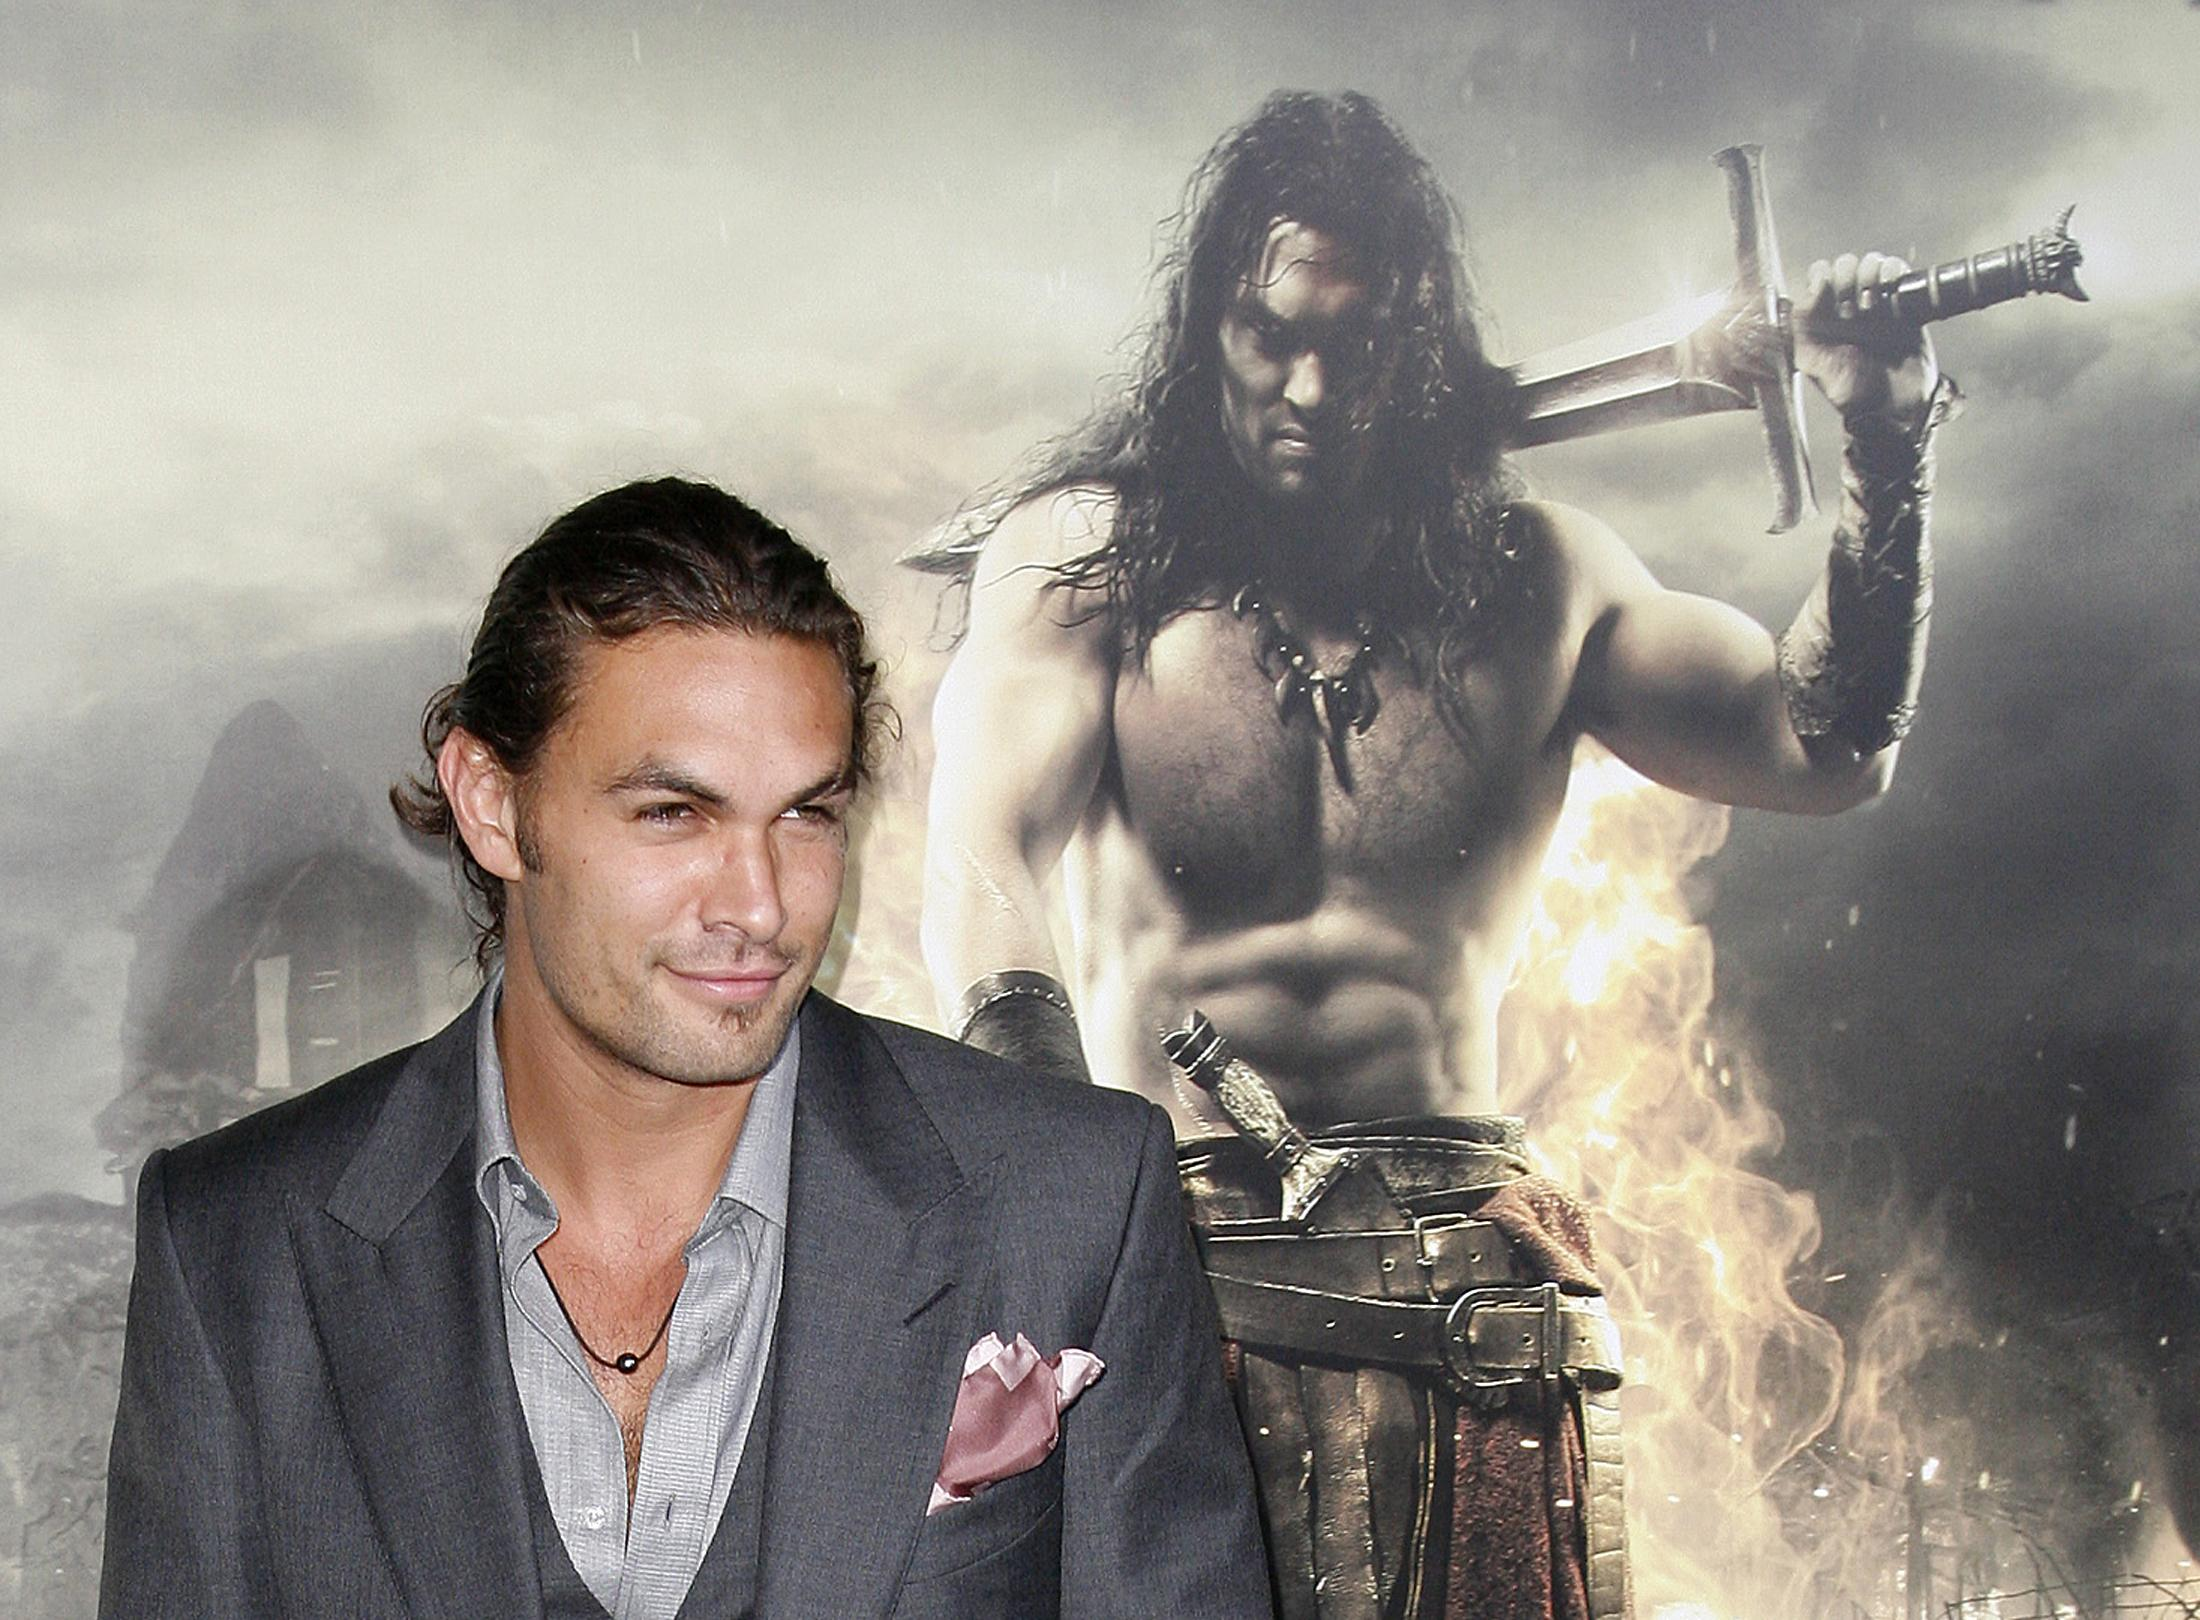 Jason Momoa game of thrones audition tape